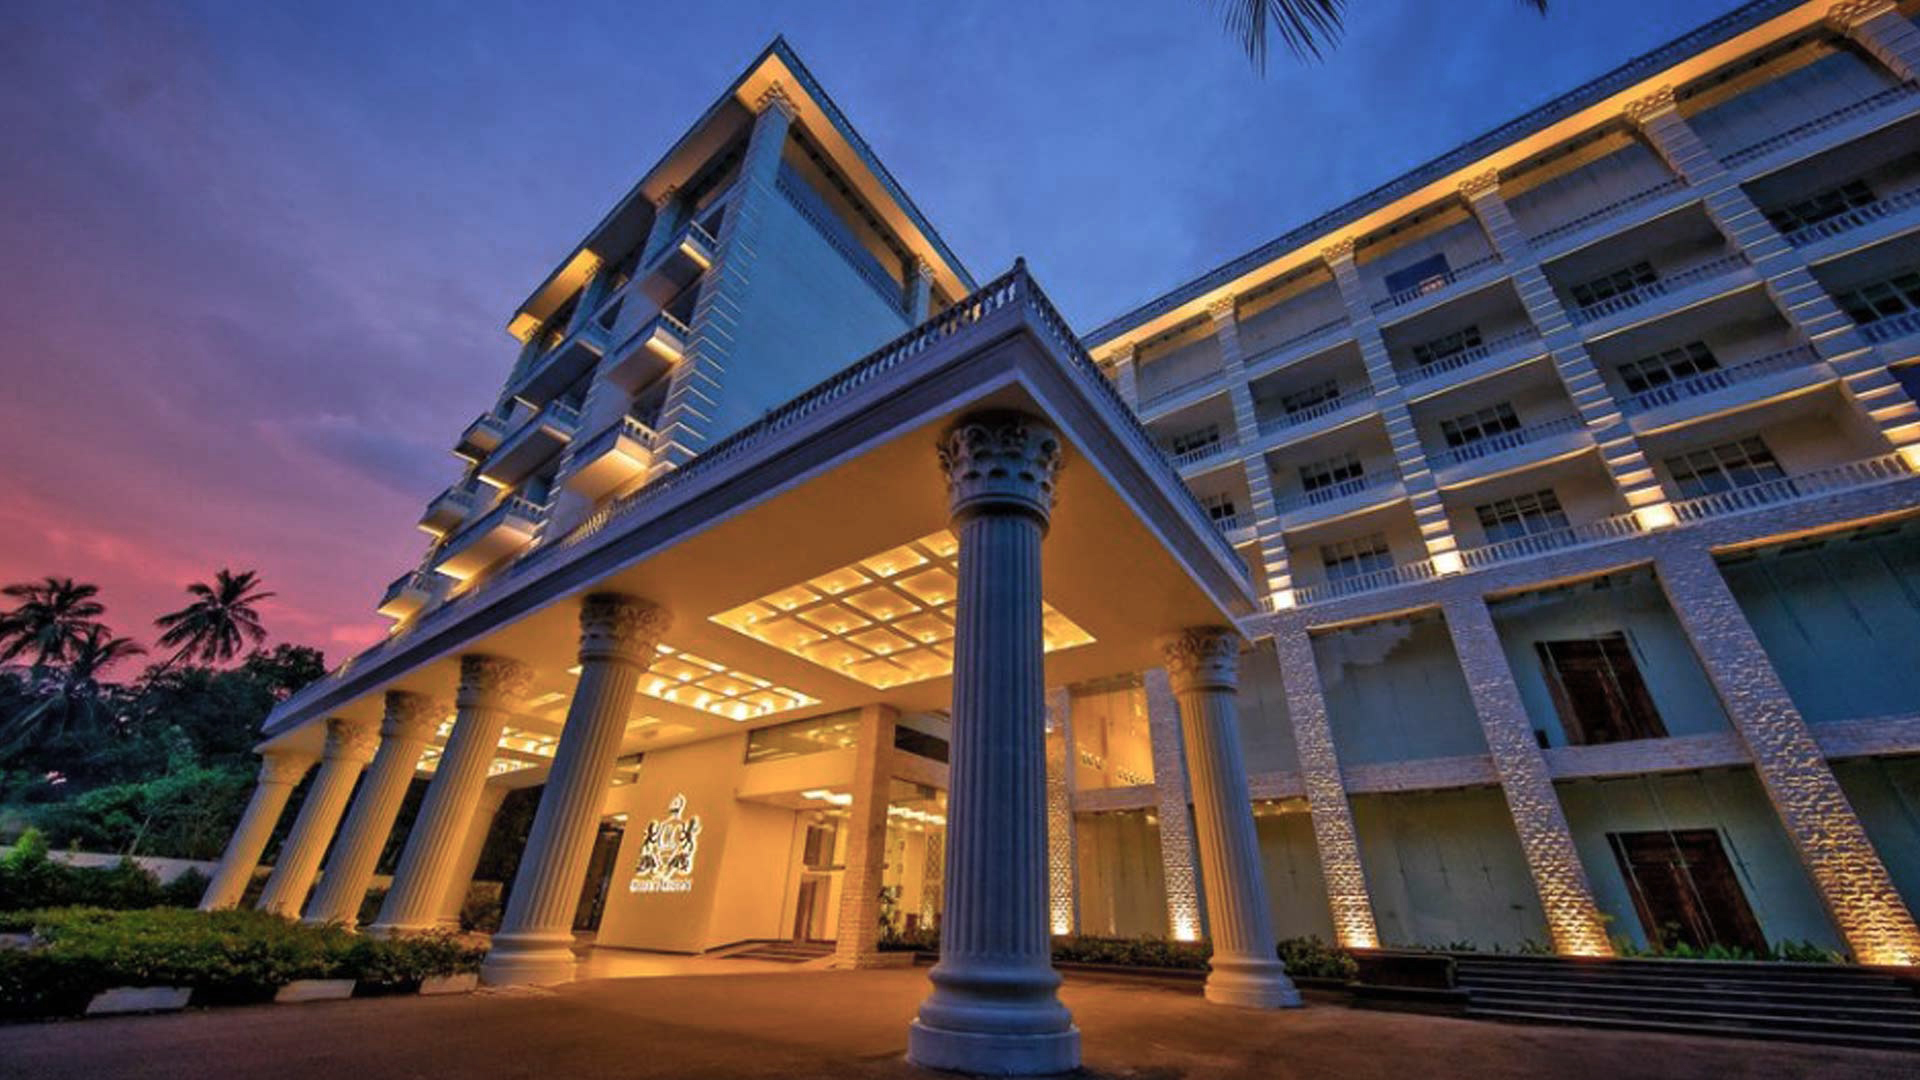 The Golden Crown - Our Hotels